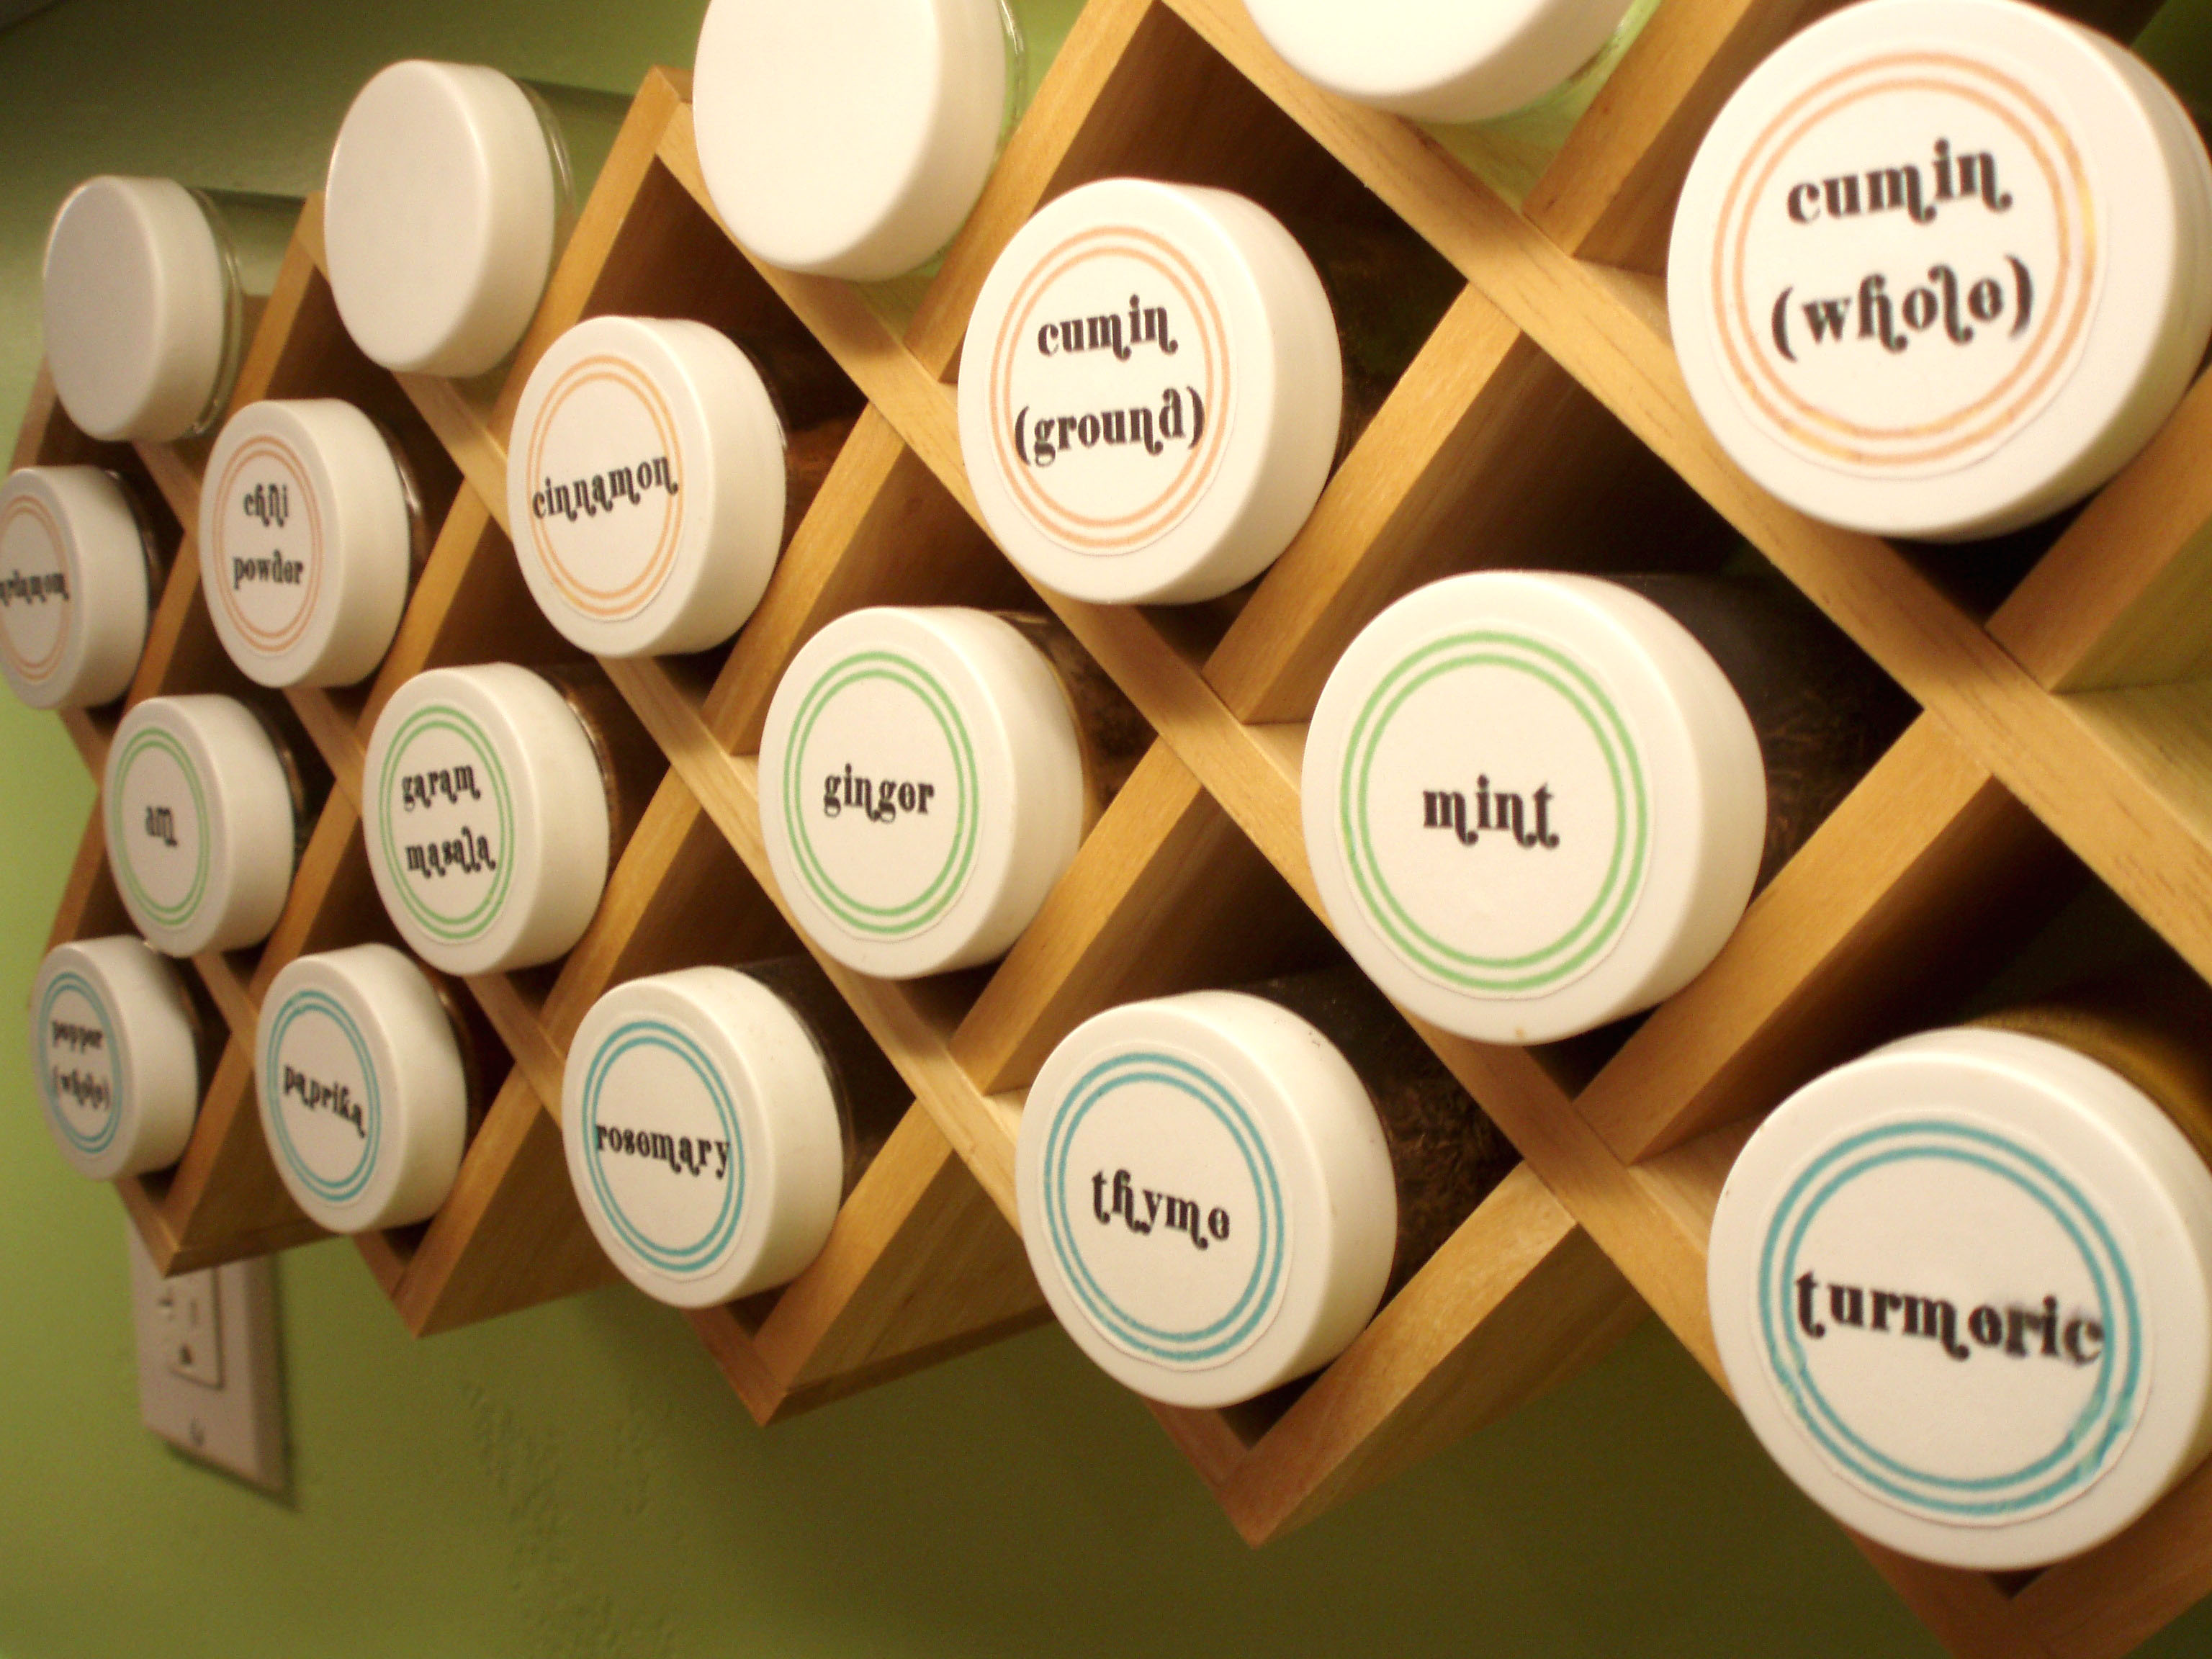 Labels: Round Labels For Spice Jars